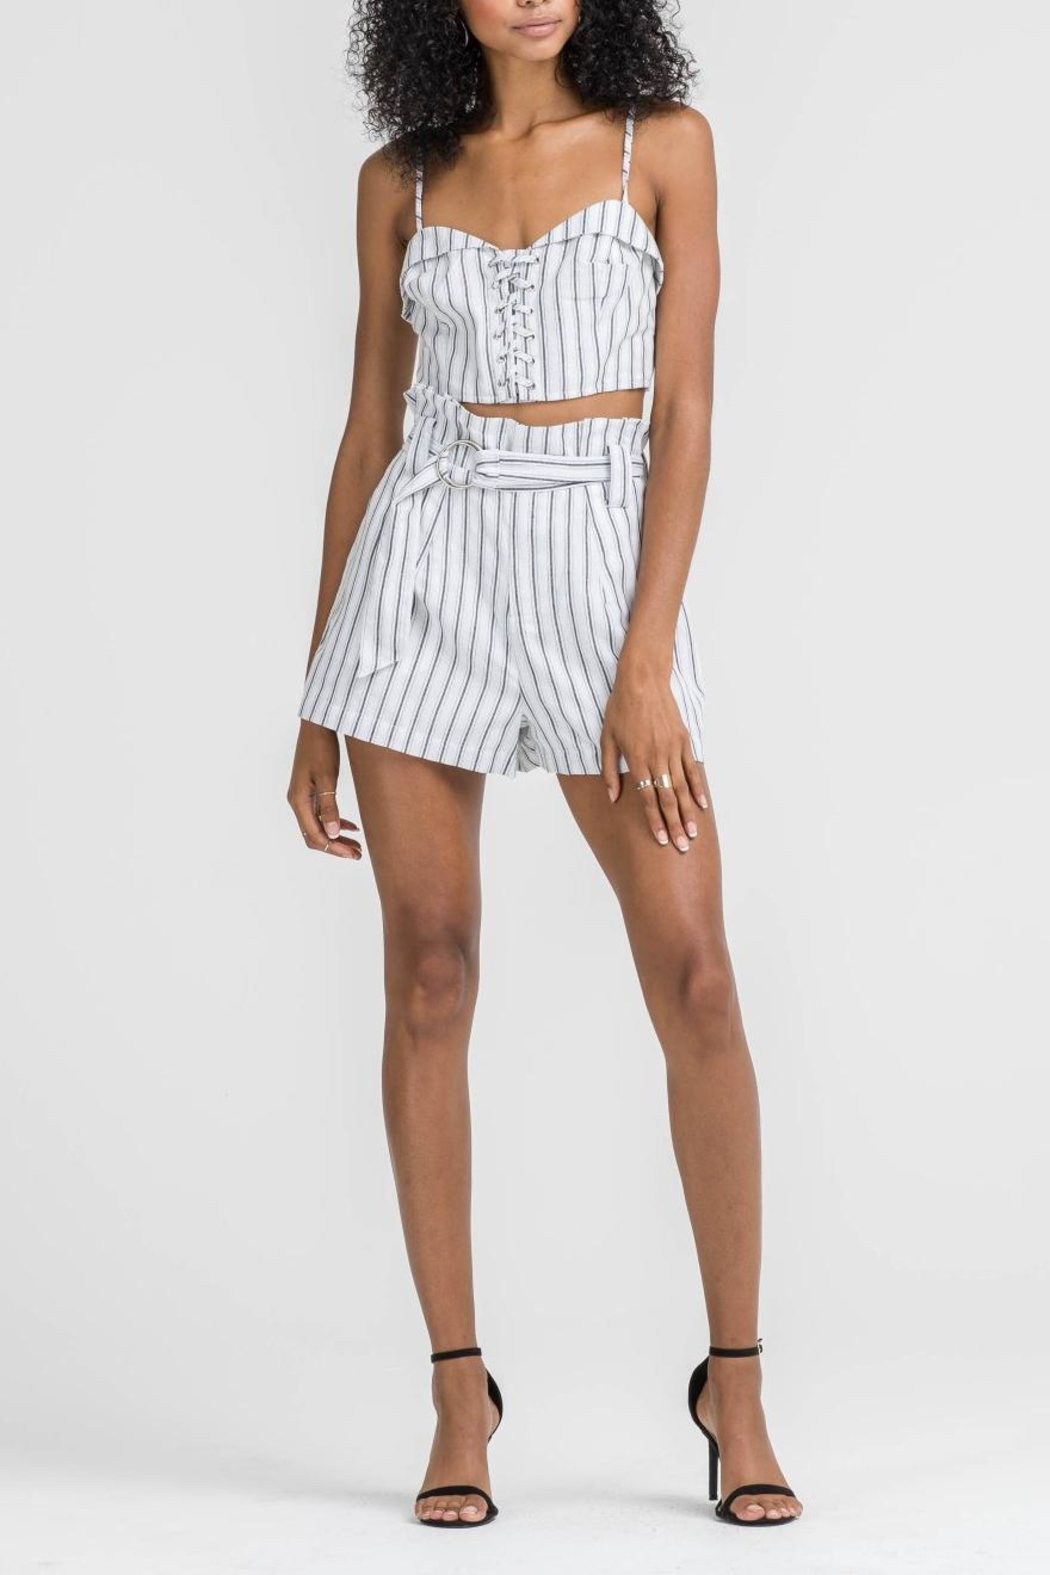 Lush Clothing  Striped Belted Shorts - Front Full Image